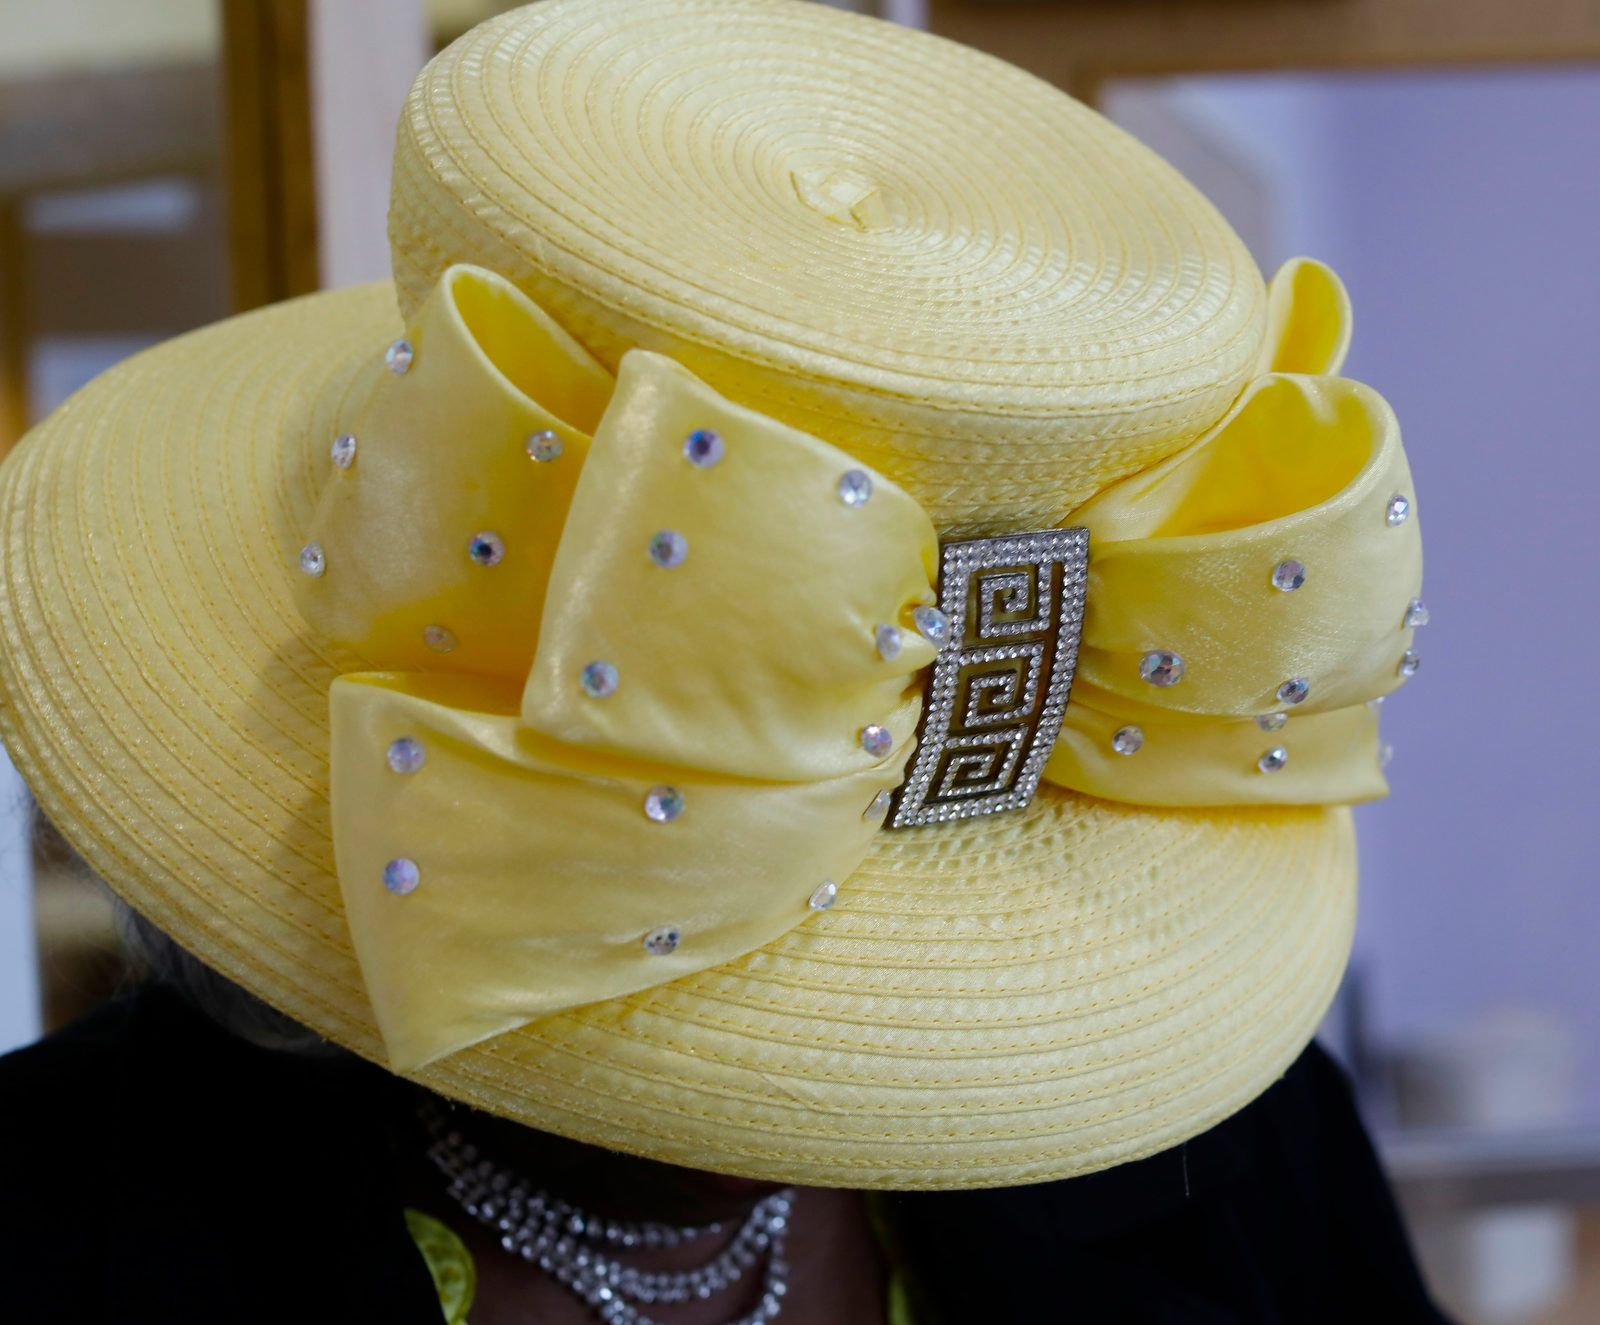 Mildred McDaniel wears a yellow hat with a gem-studded bow at Elim Christian Fellowship.